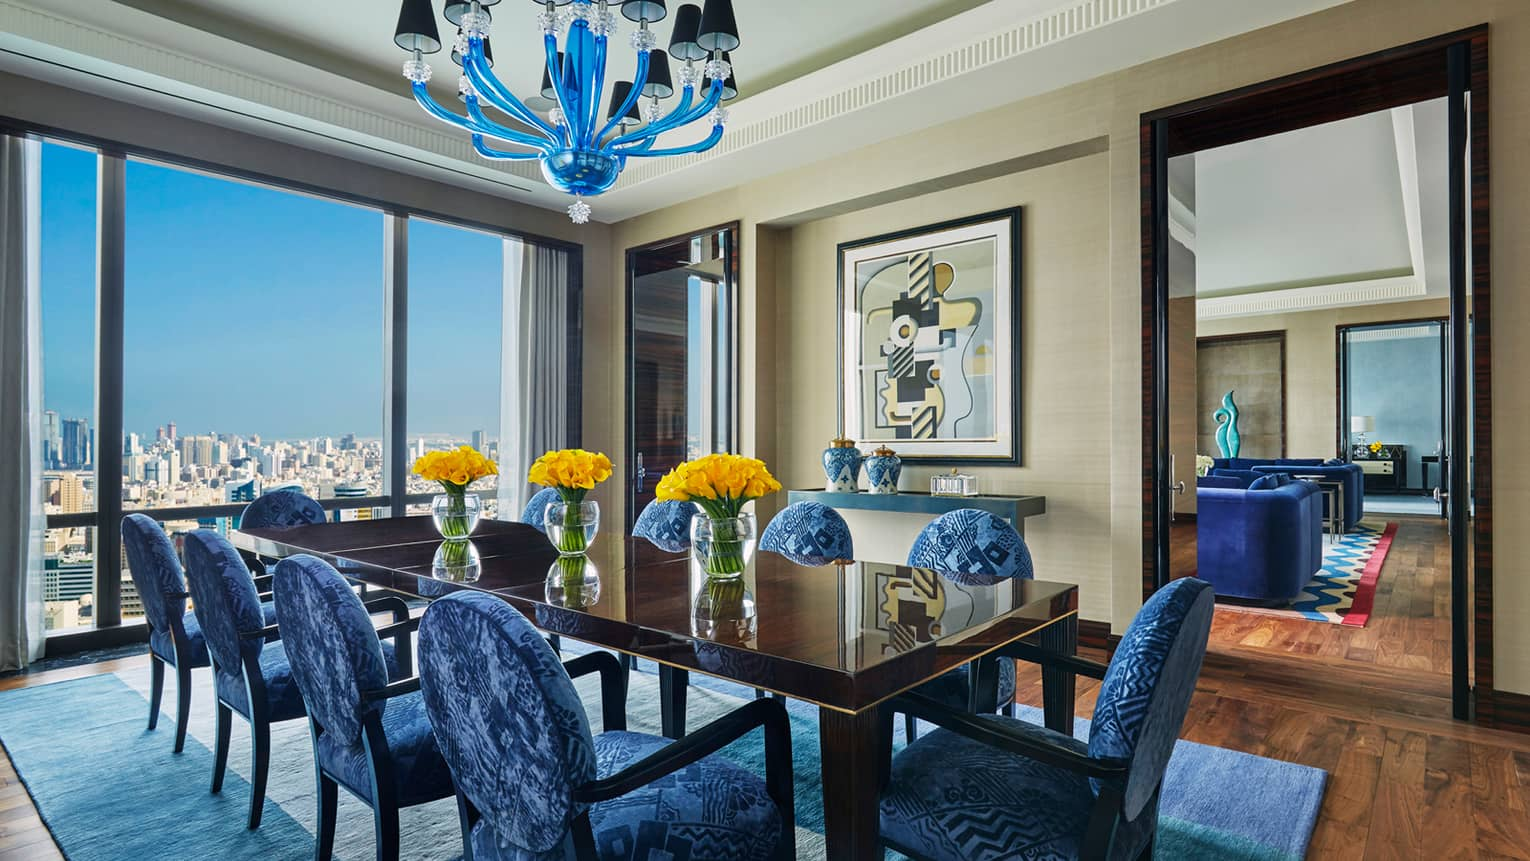 Royal Suite 10-person dining table with modern blue patterned chairs, vases of yellow flowers, blue pendant chandelier